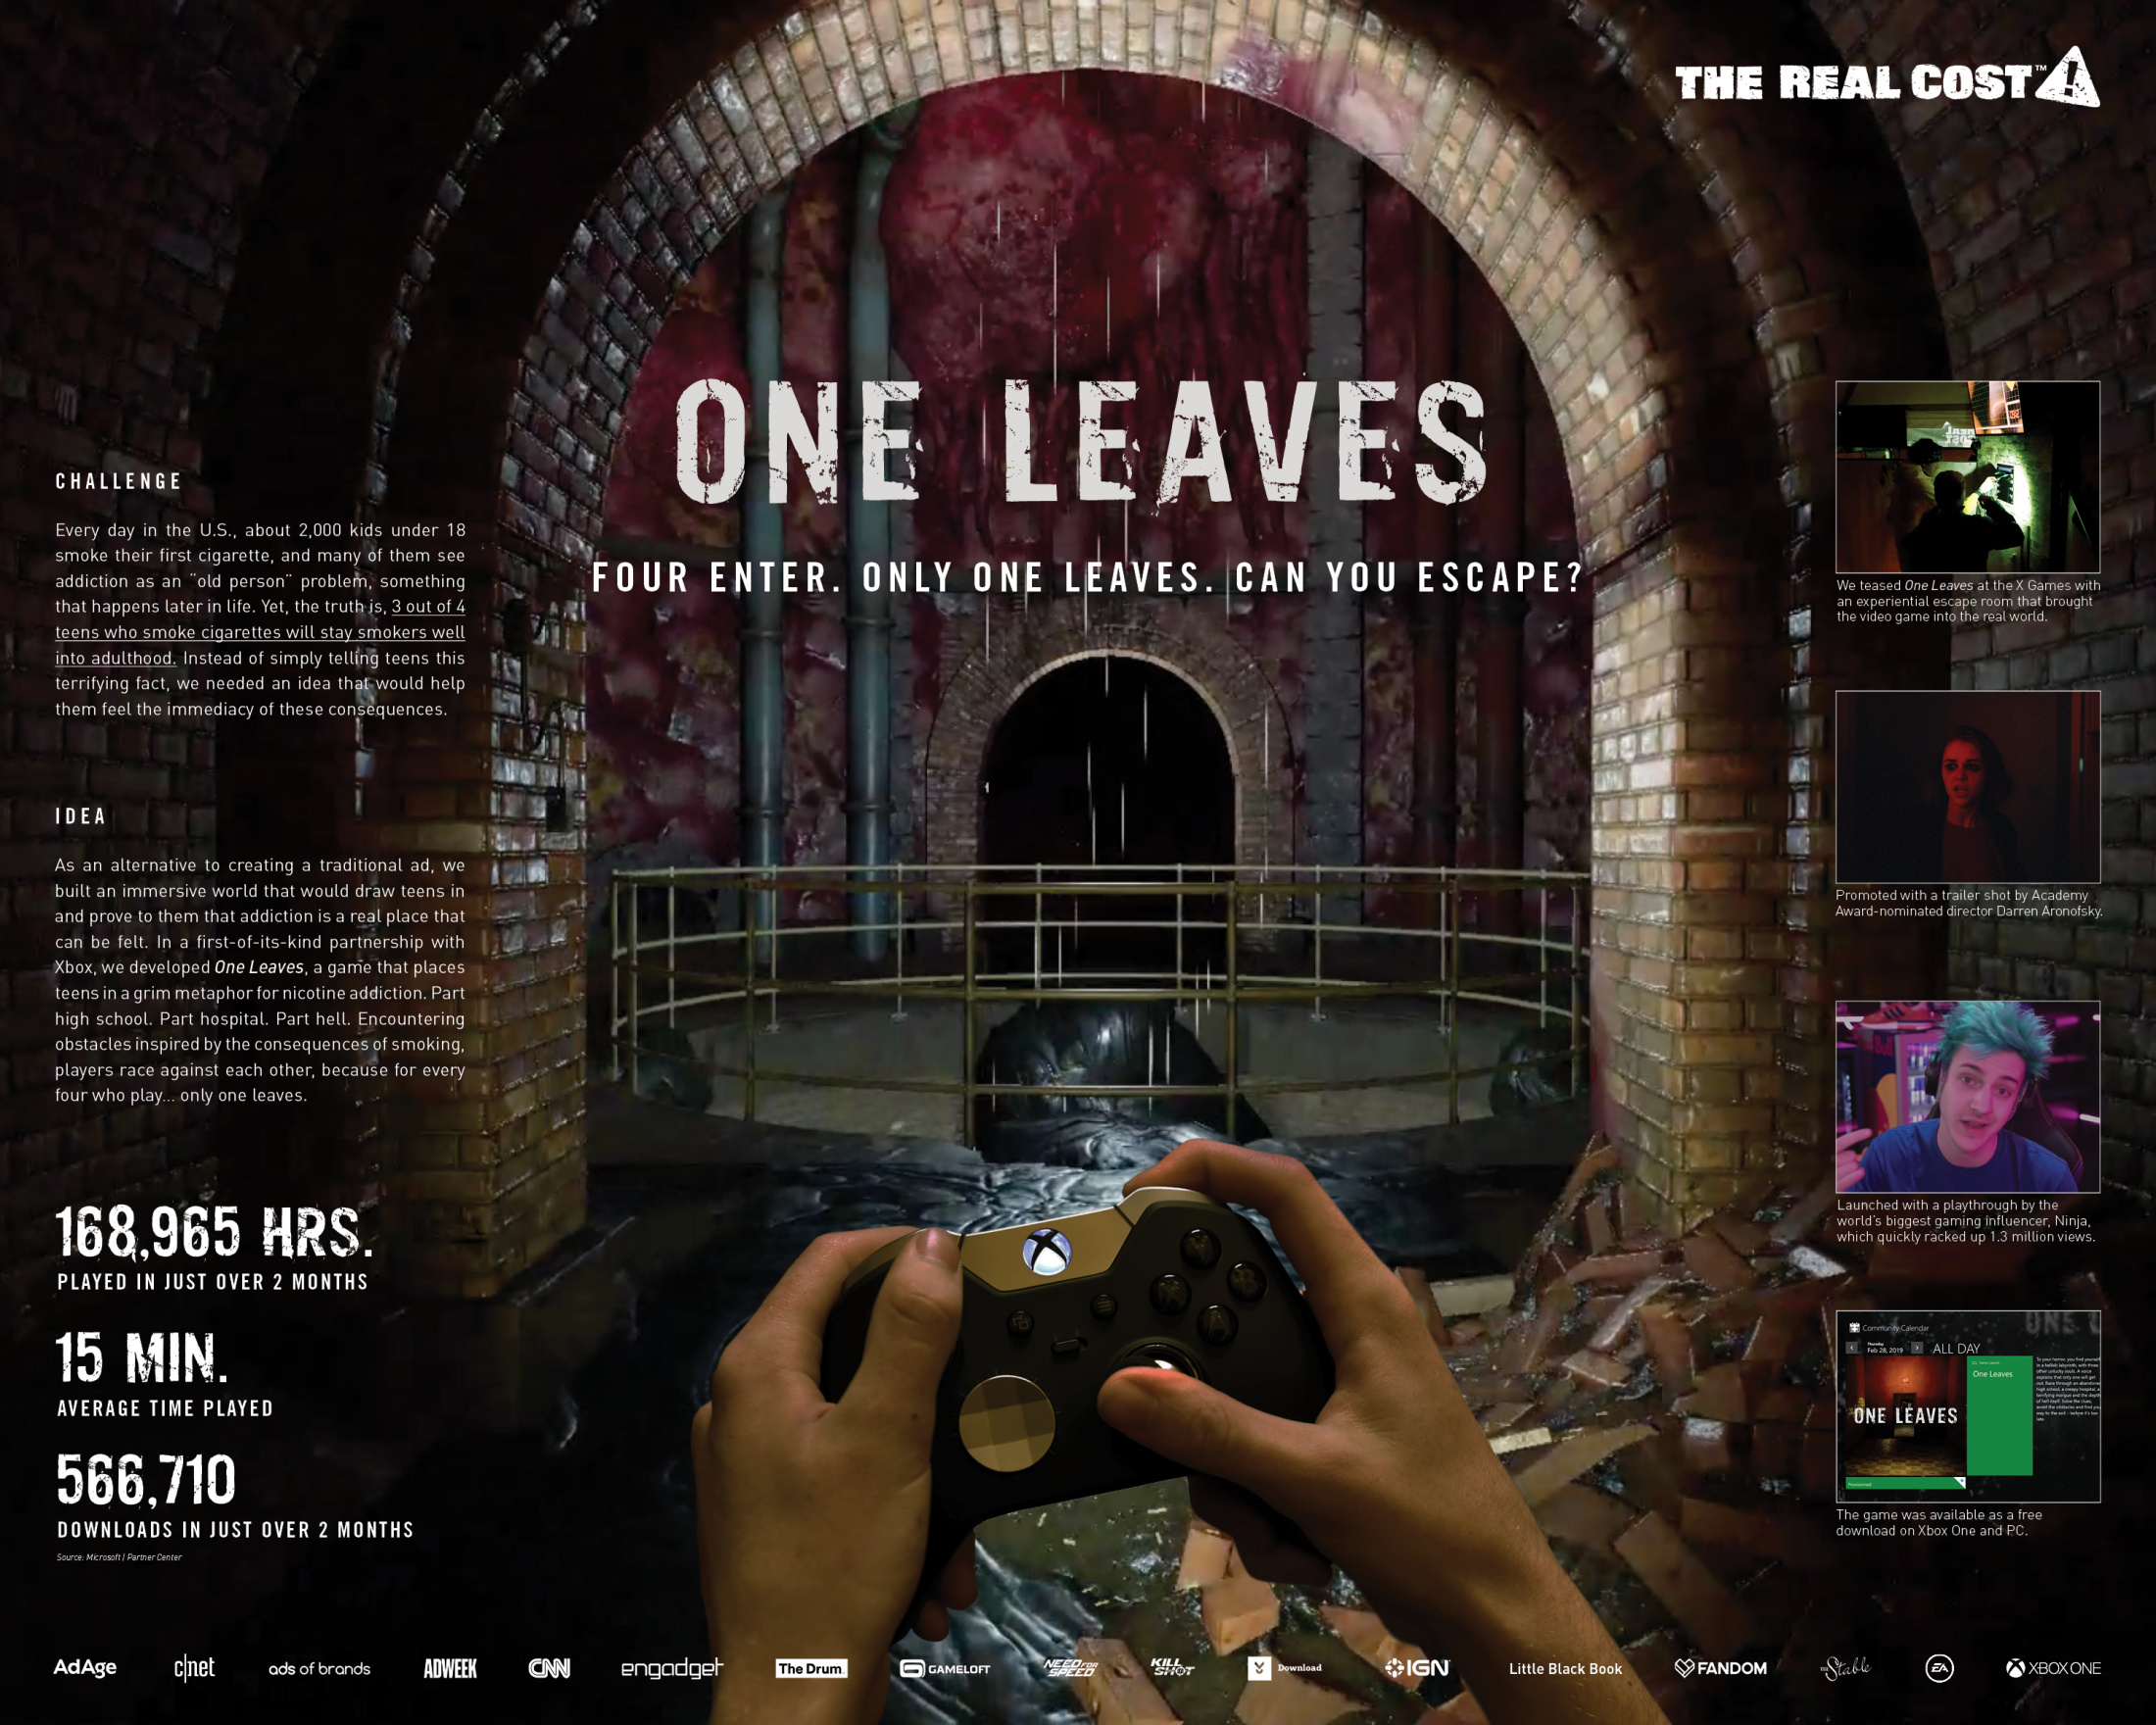 Thumbnail for The Real cost - One Leaves